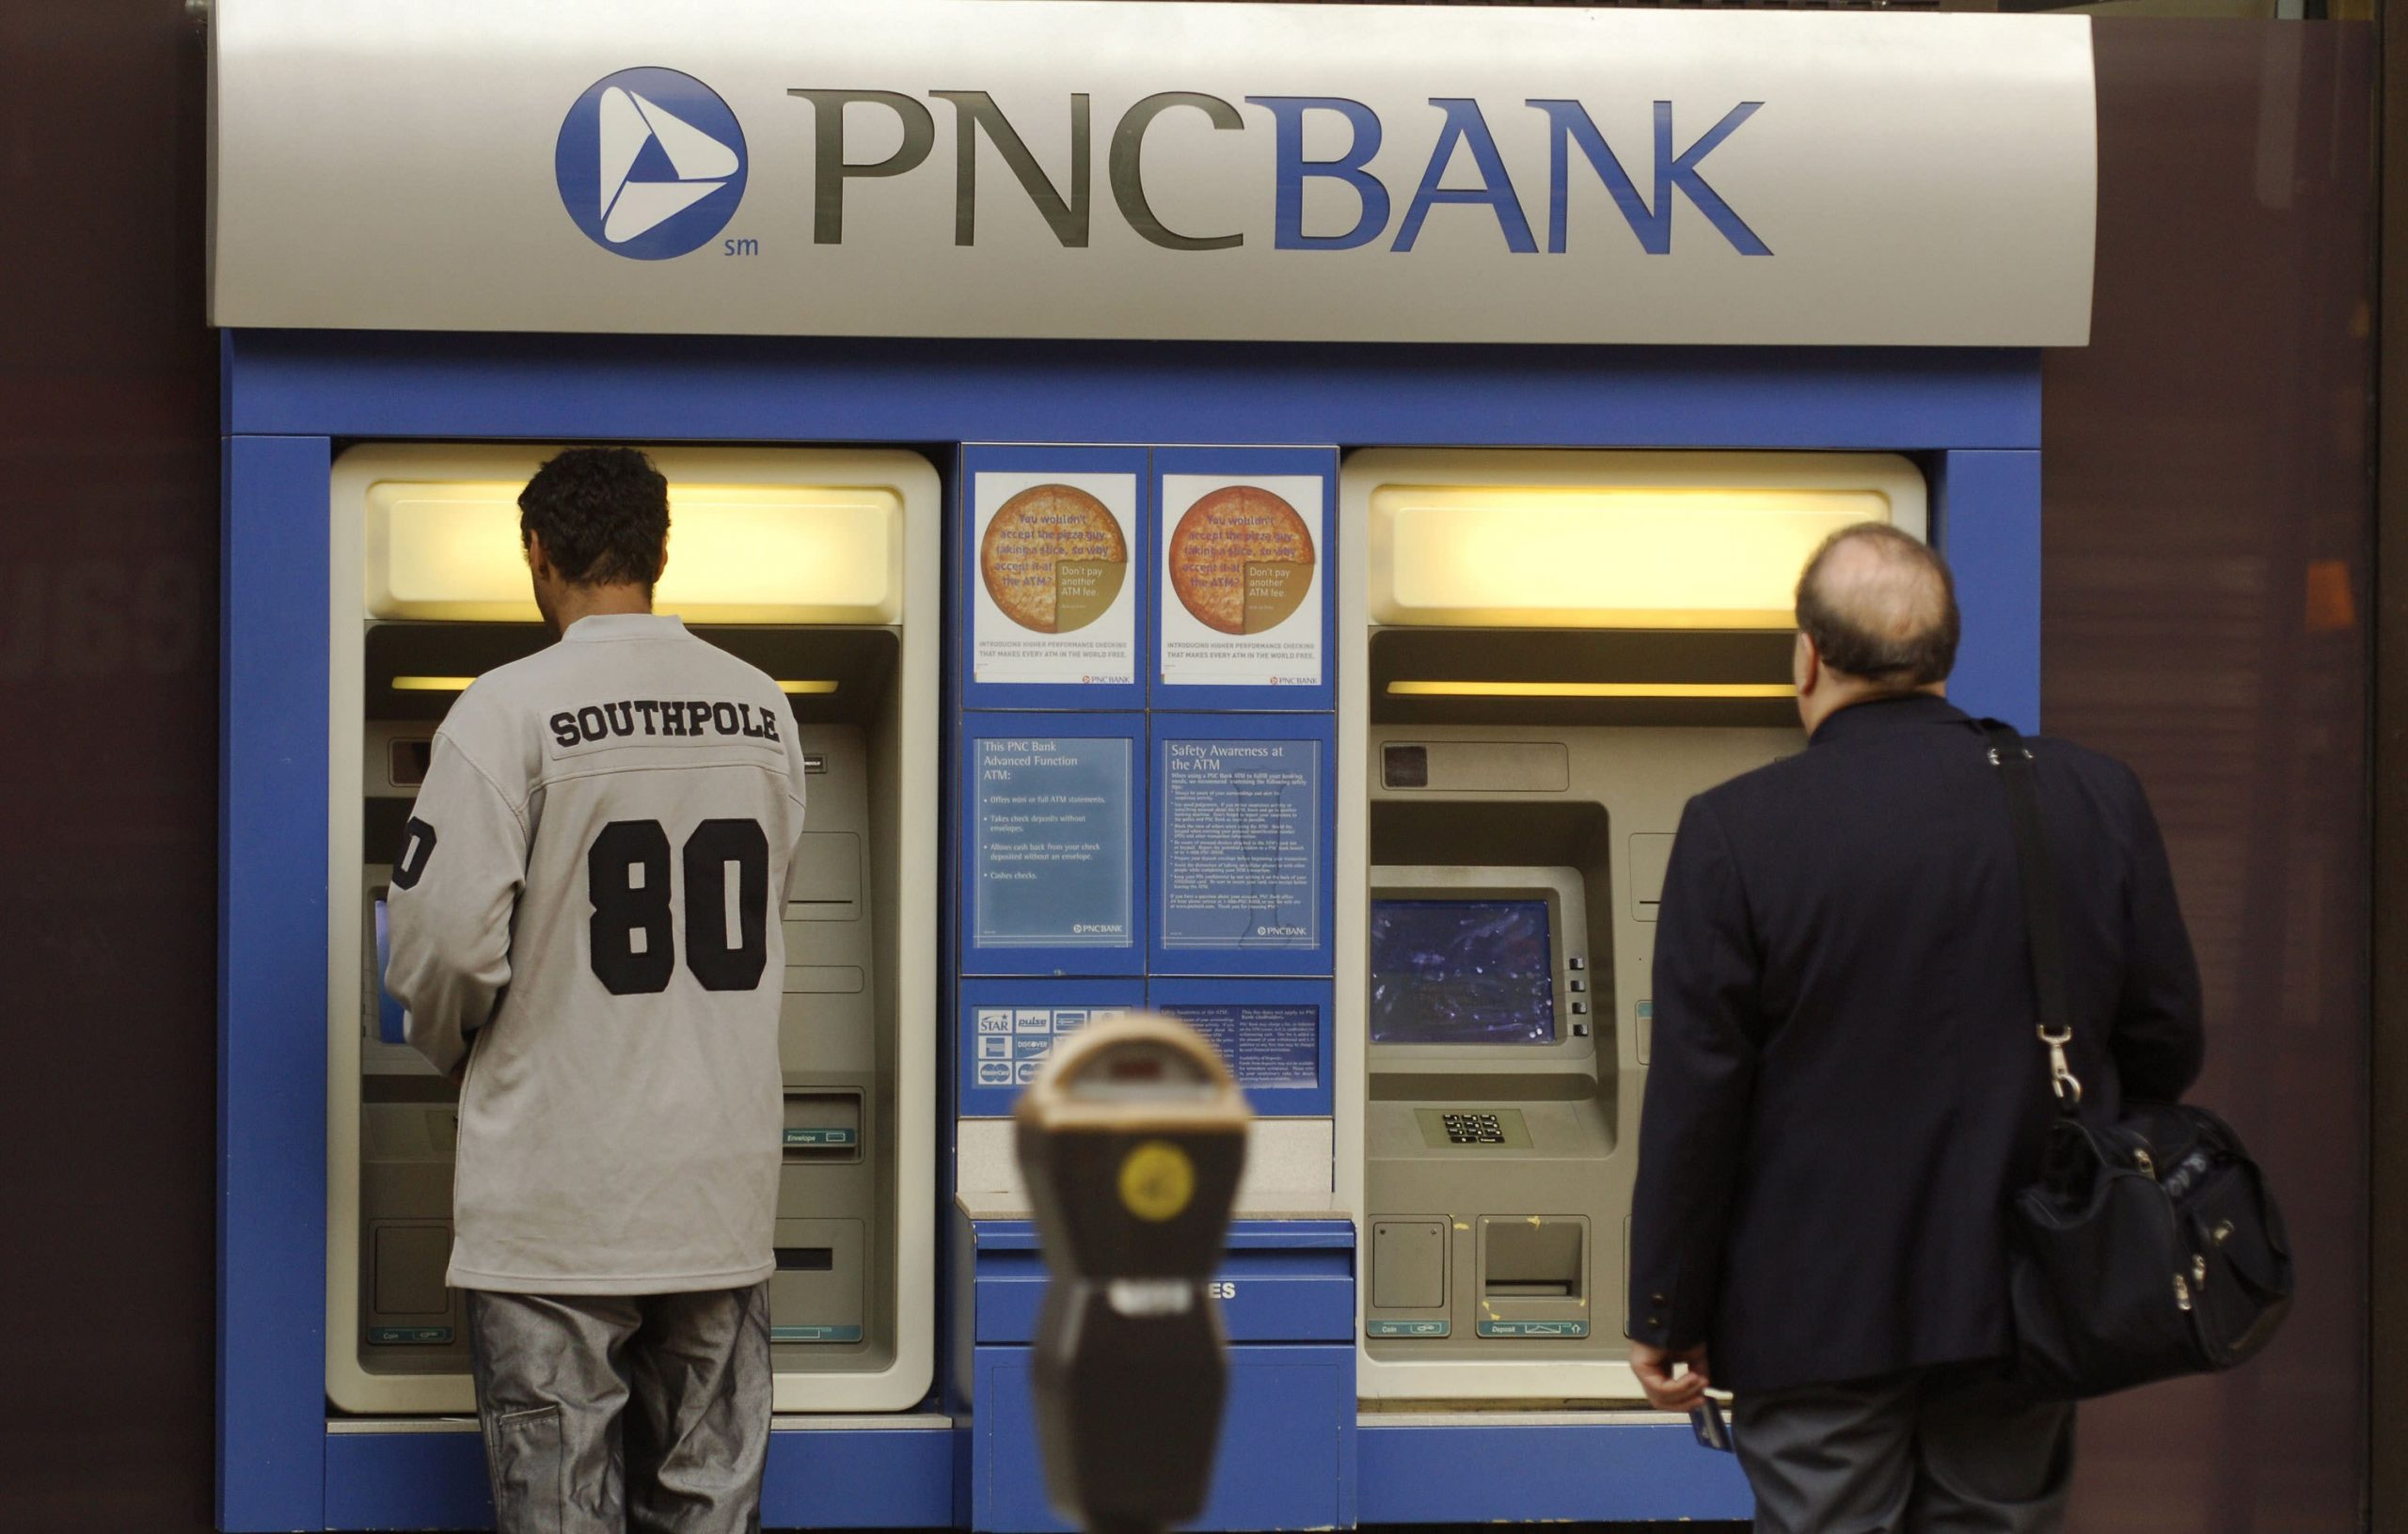 PNC to buy U.S. operations of Spanish bank BBVA for $11.6 billion